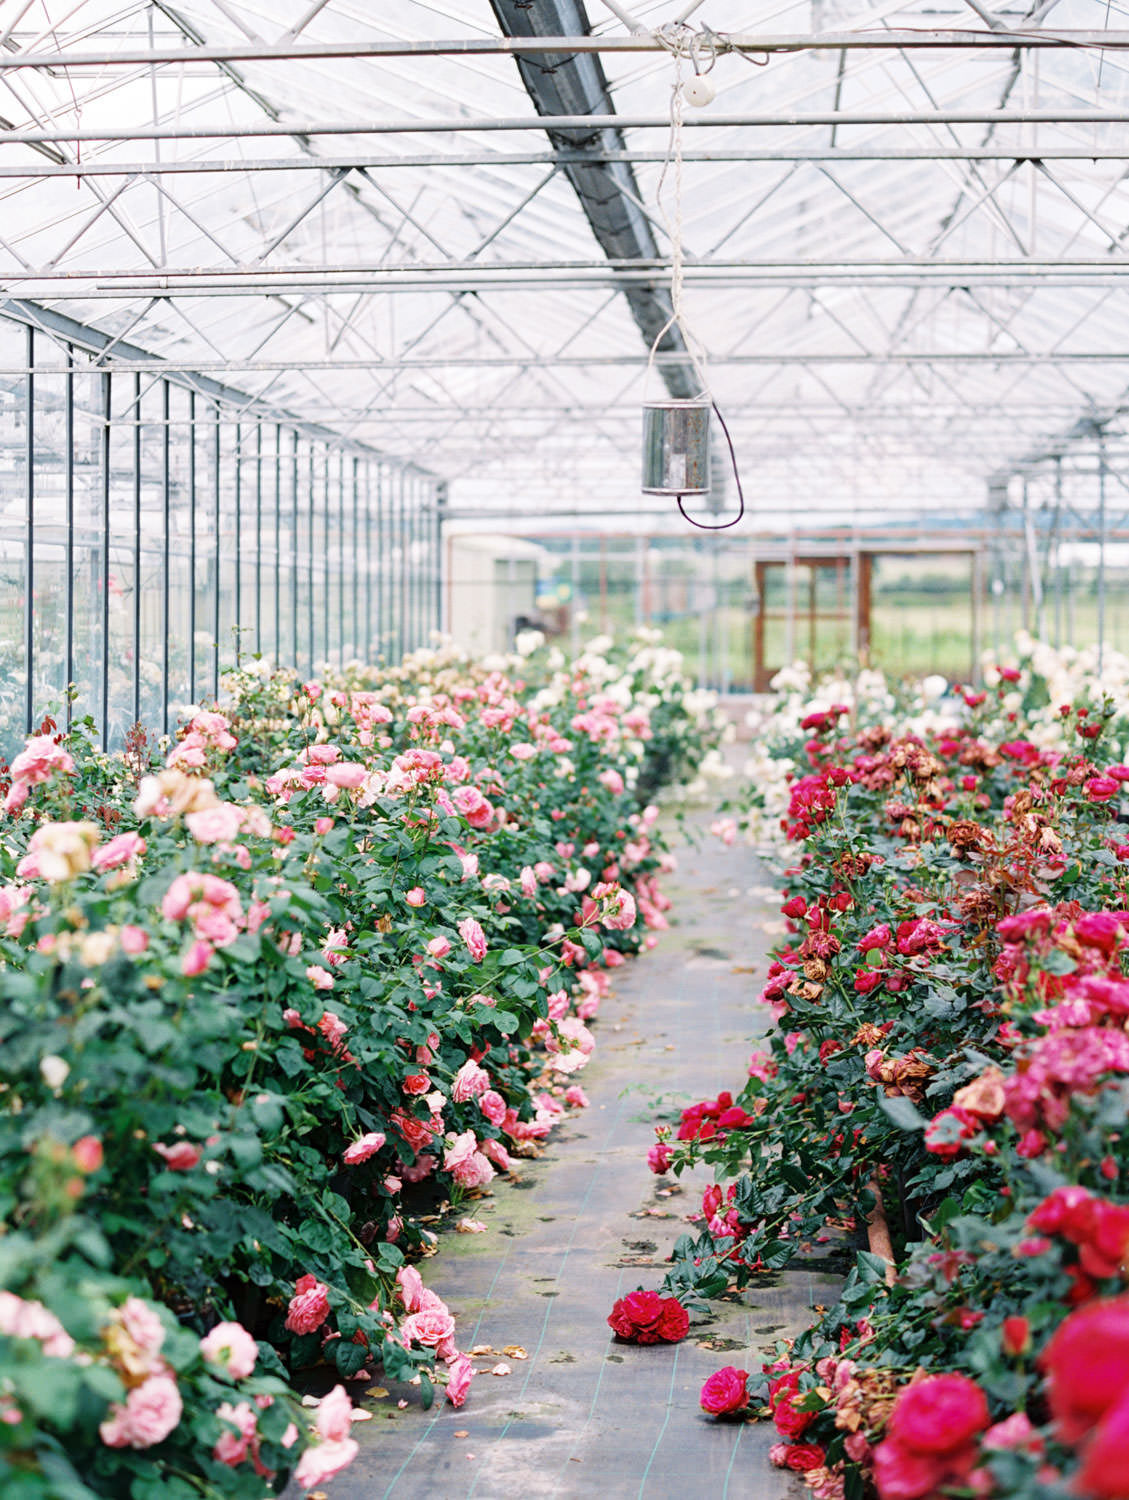 David Austin Roses greenhouse on the Flutter Magazine Retreat in the Cotswolds. Film by Cavin Elizabeth Photography